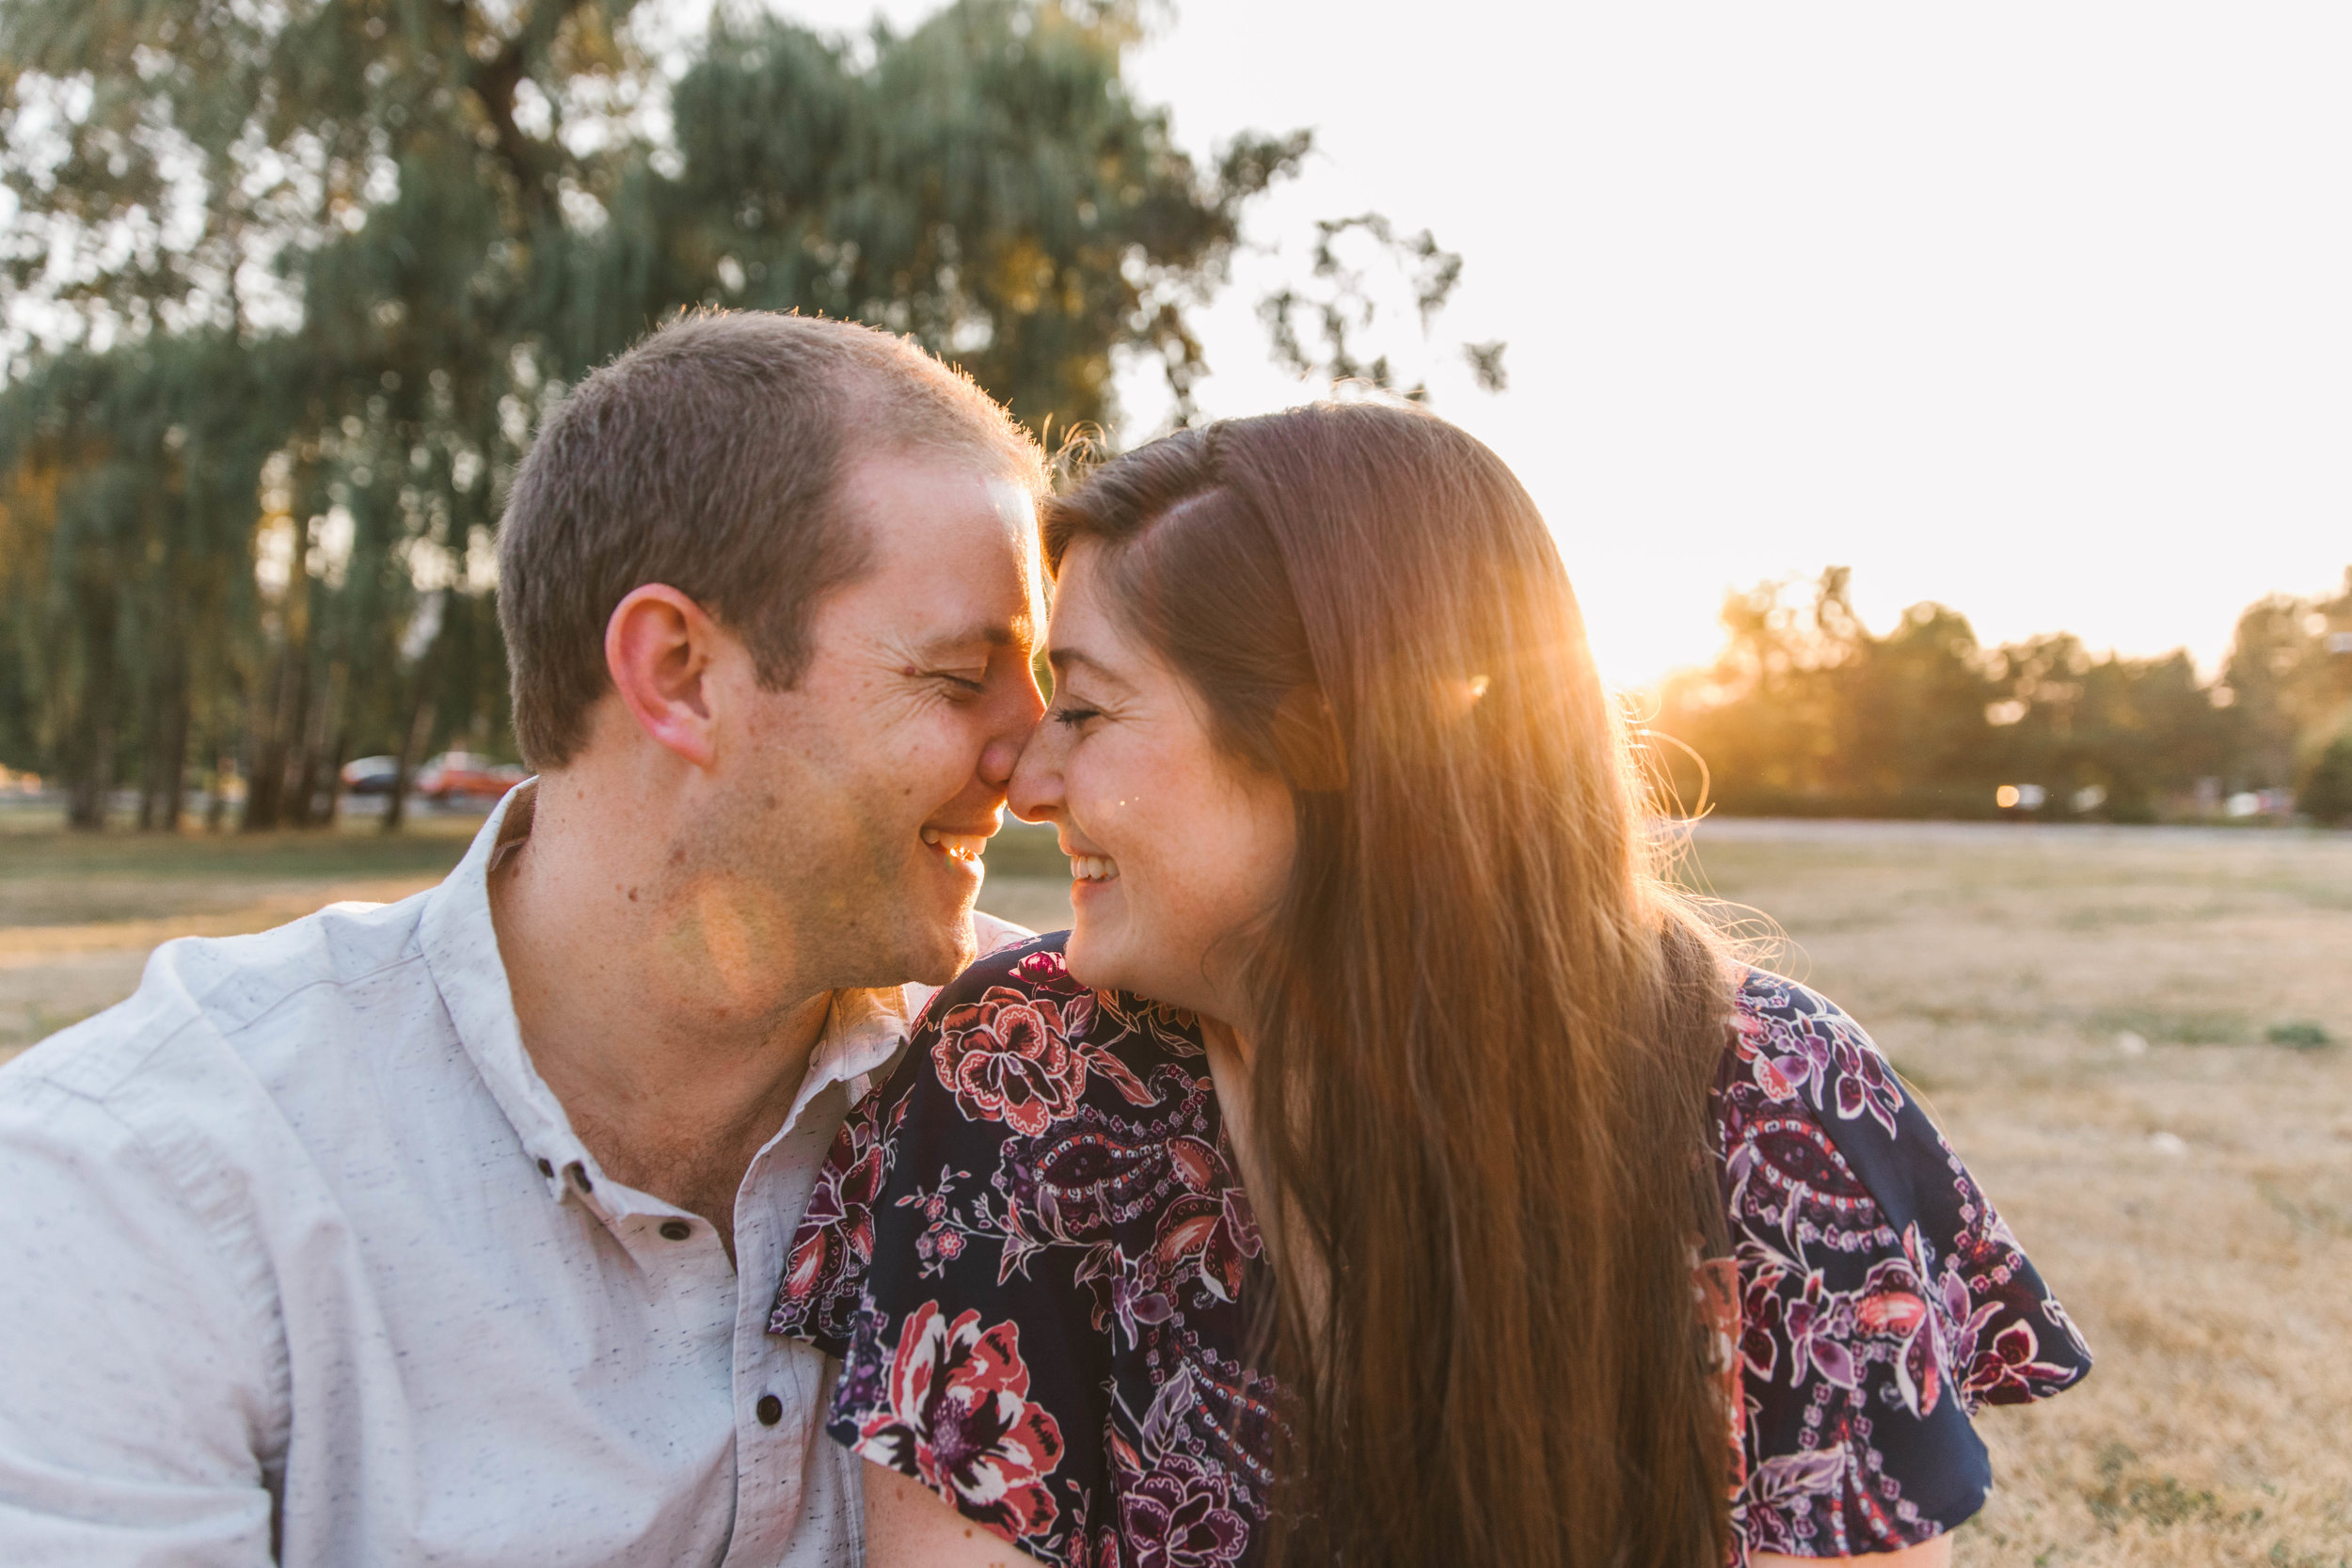 Playful and sweet family session in Issaquah at golden hour and twilight Mom and Dad with their toddler photographed by Chelsea Macor Photography in a playful and intimate way-3.jpg